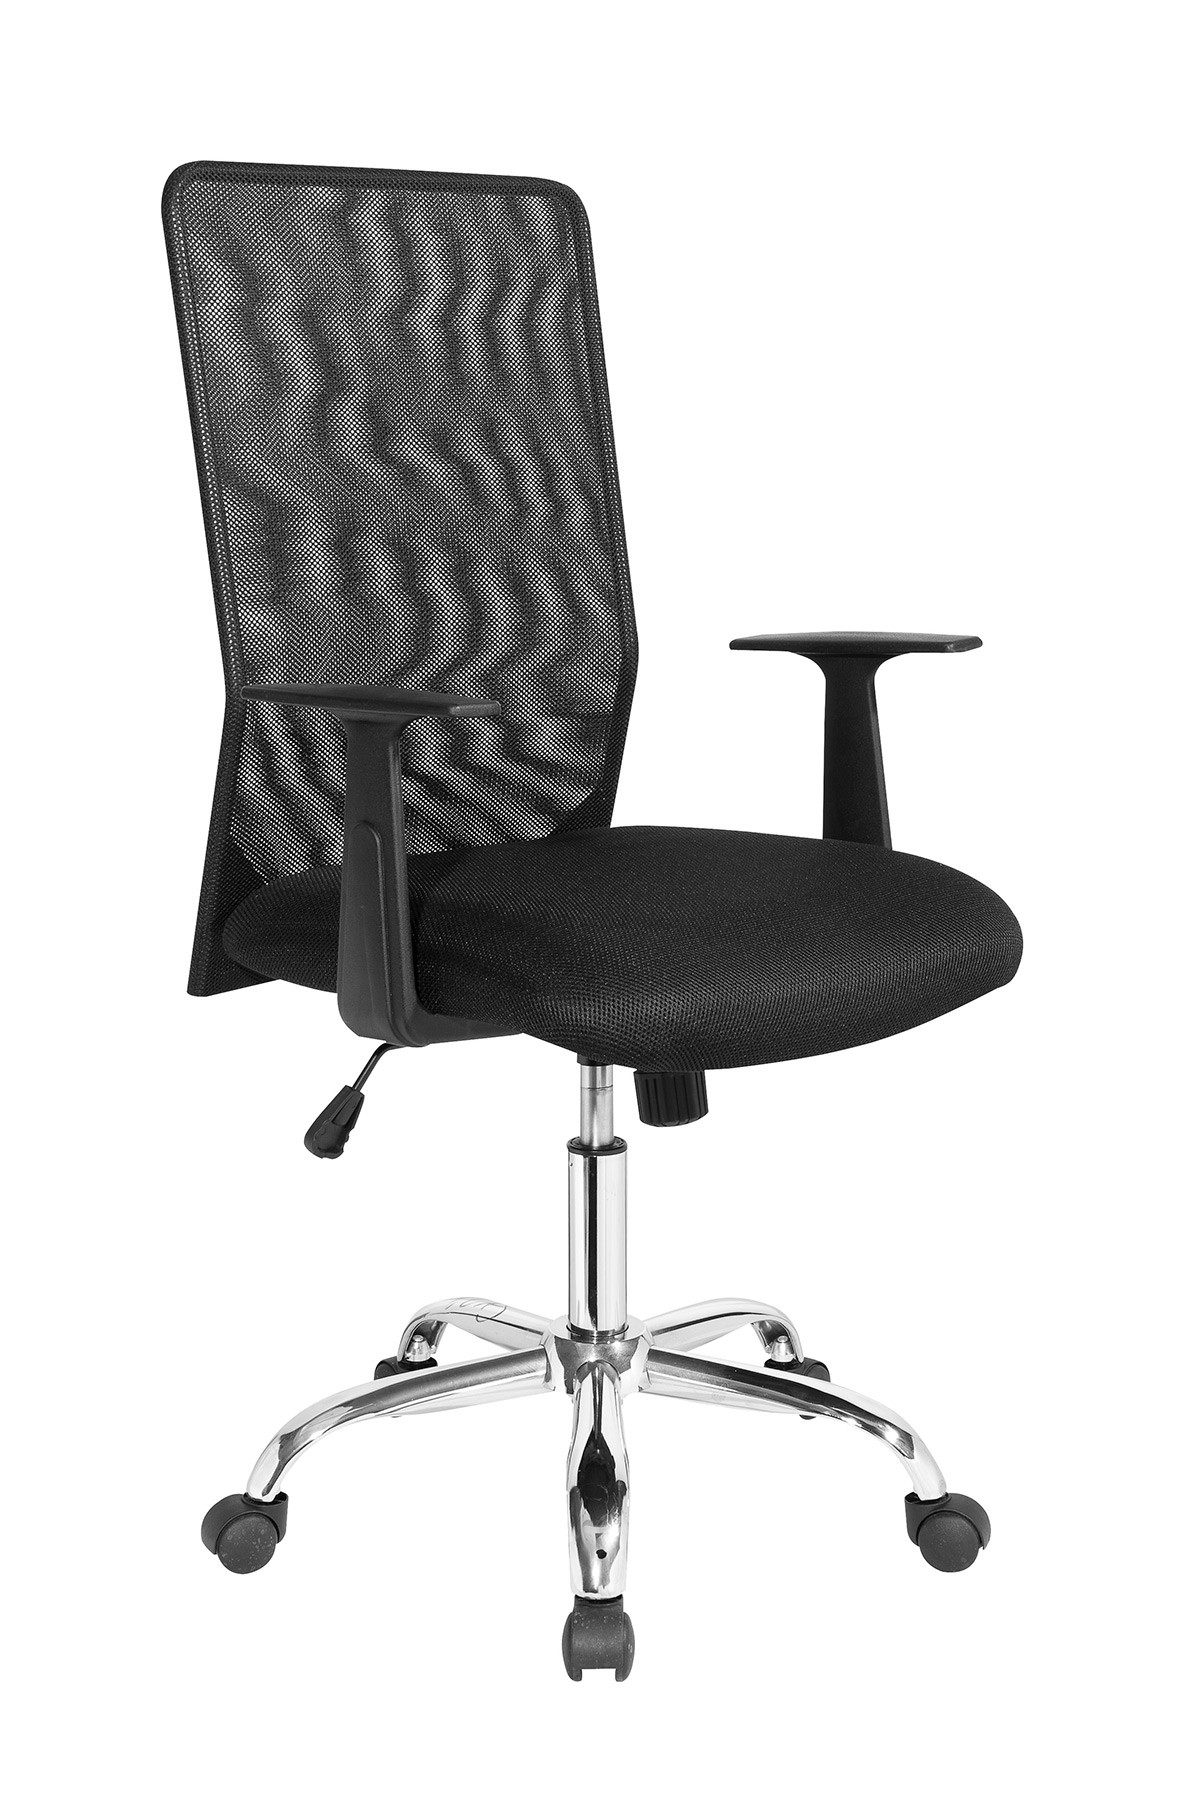 The Top Tips when Buying an Ergonomic Office Chair - LA Furniture Blog